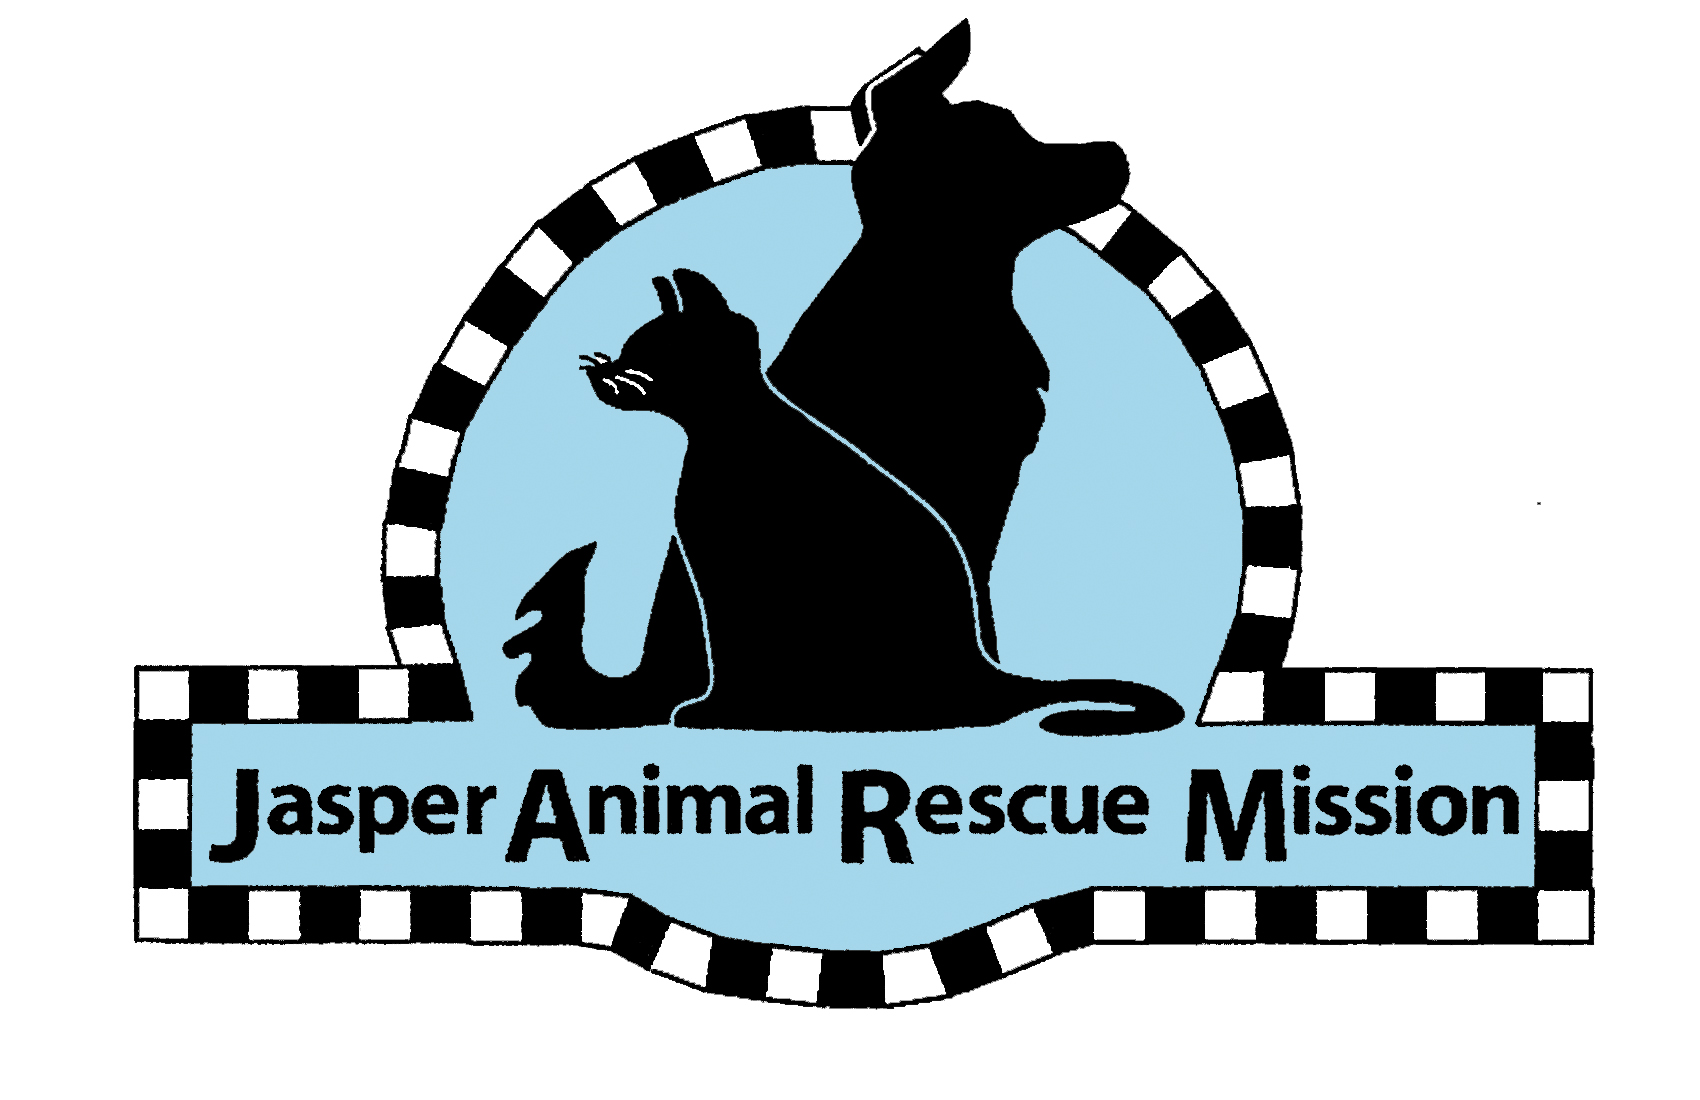 Jasper Animal Rescue Mission